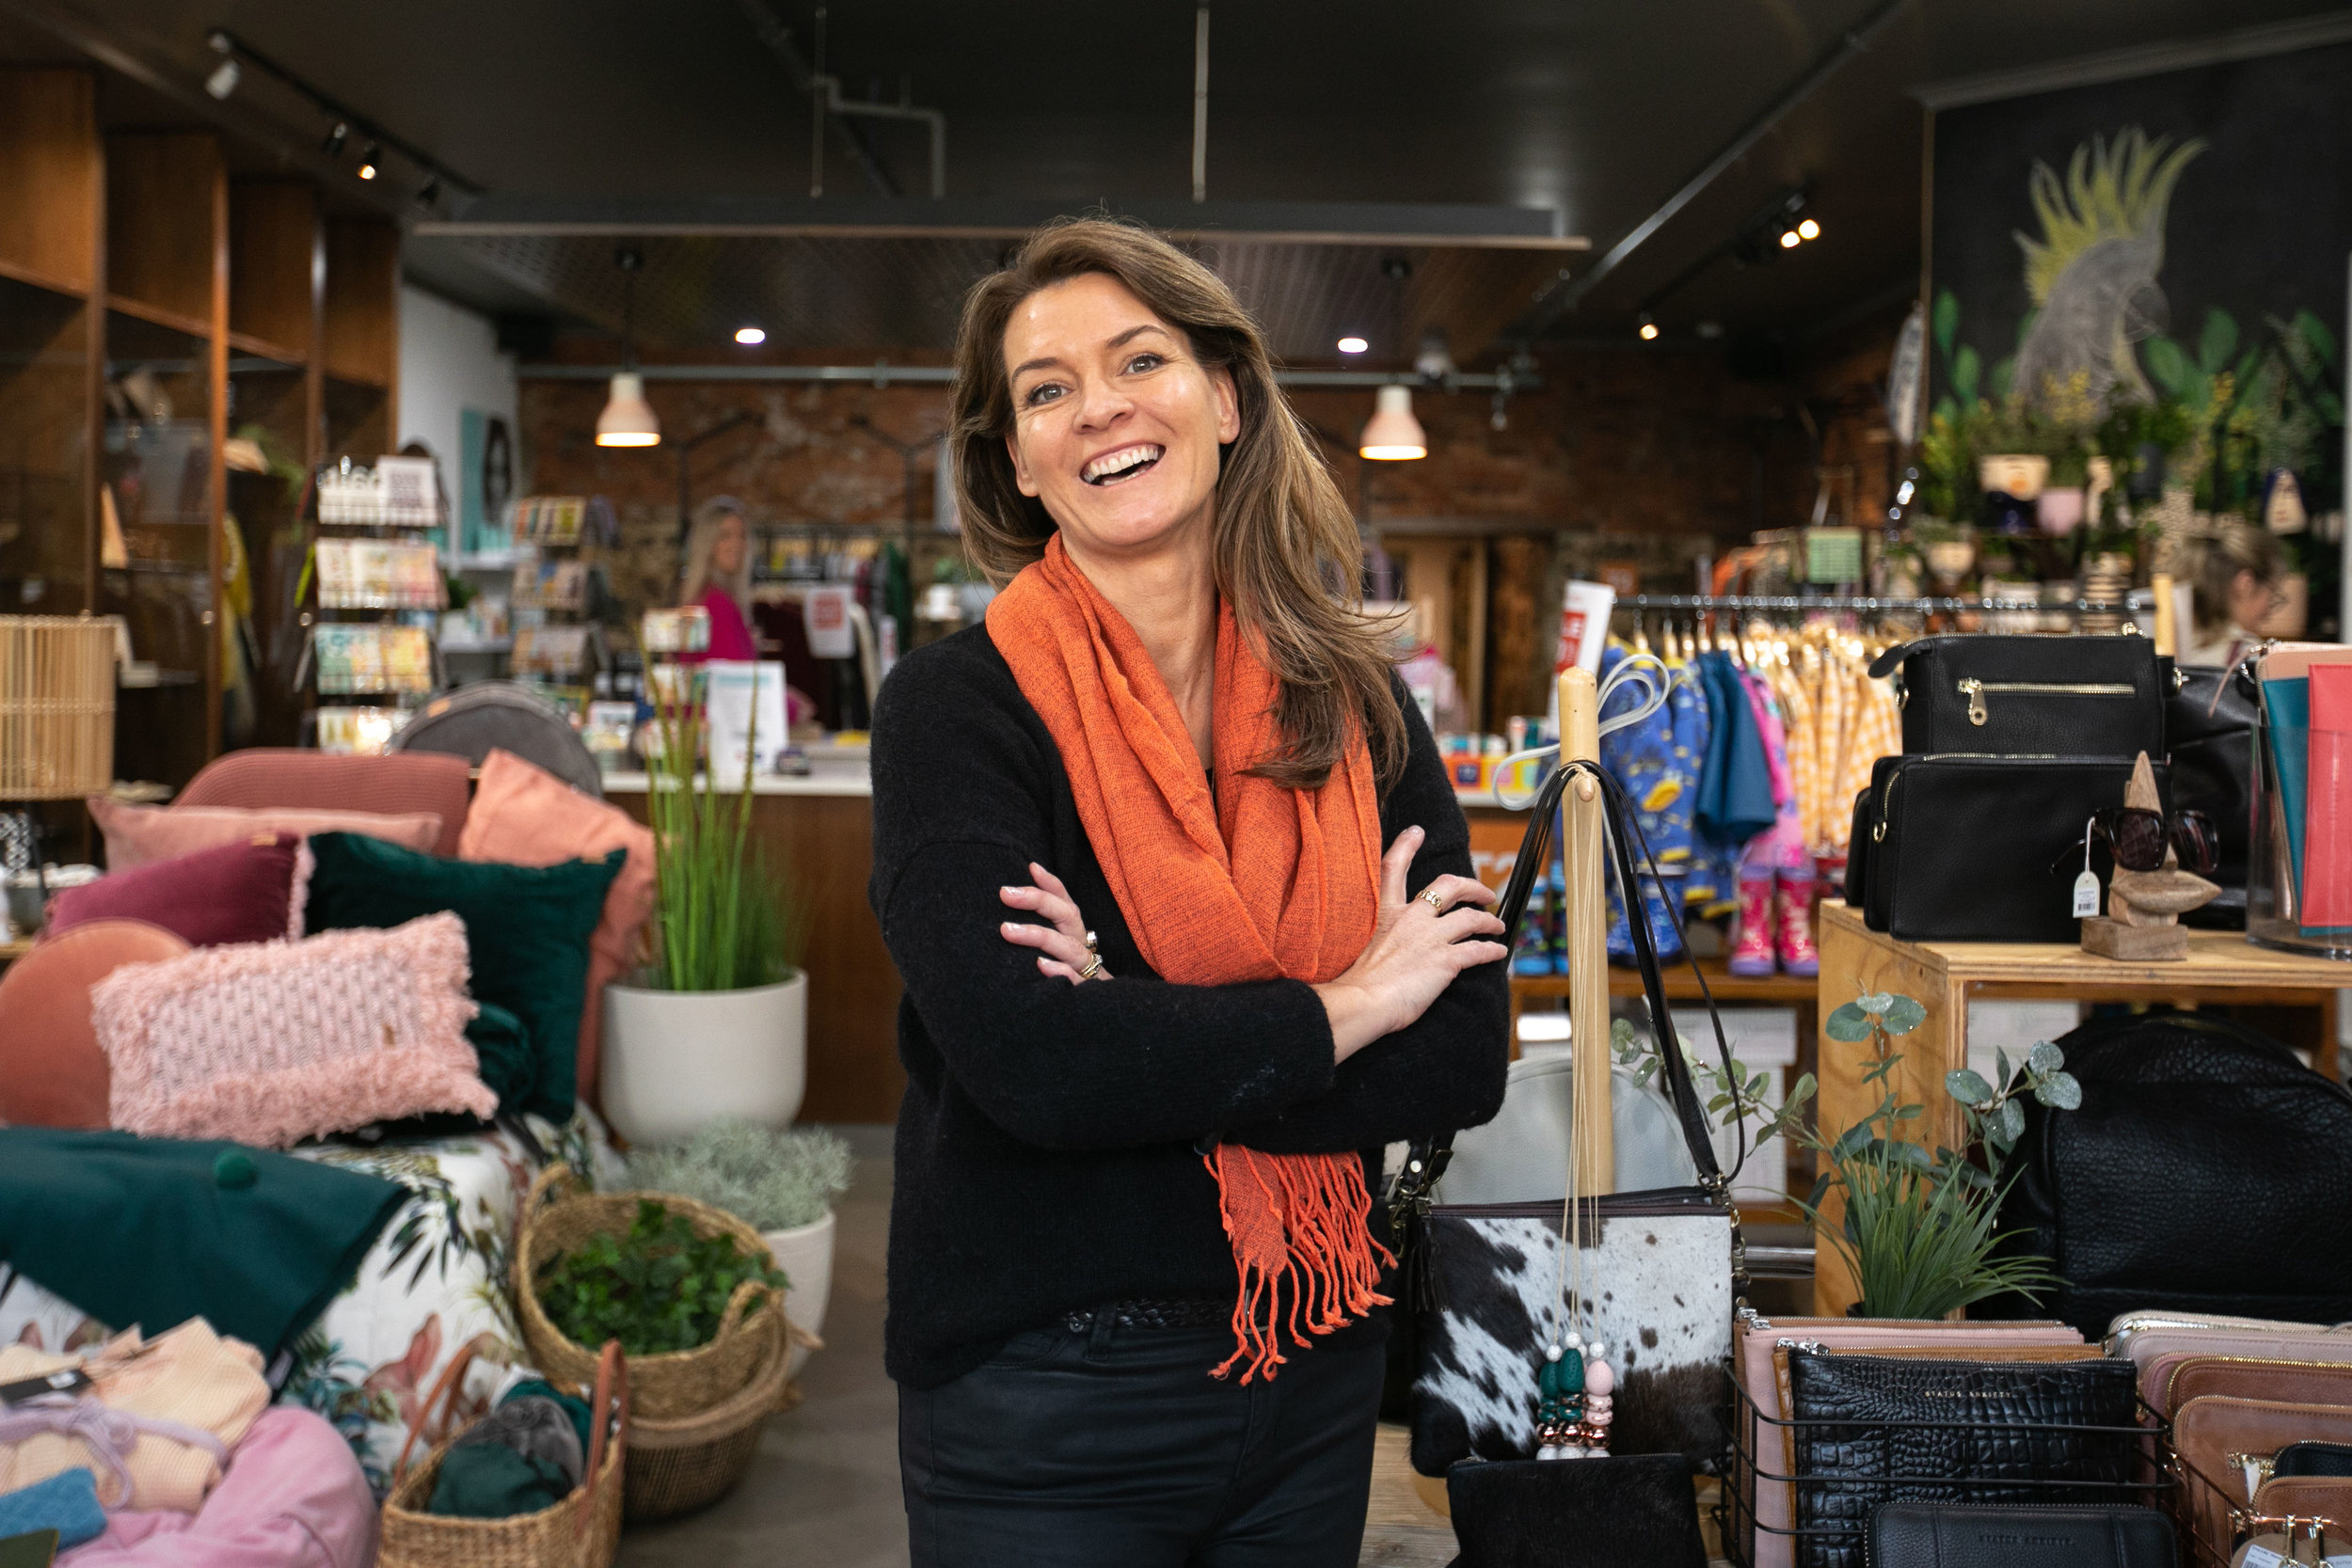 Amanda Gutwein, owner of Inside Home and Gifts stands in her shop. Image: Melanie de Ruyter for Winterlicous 2019.